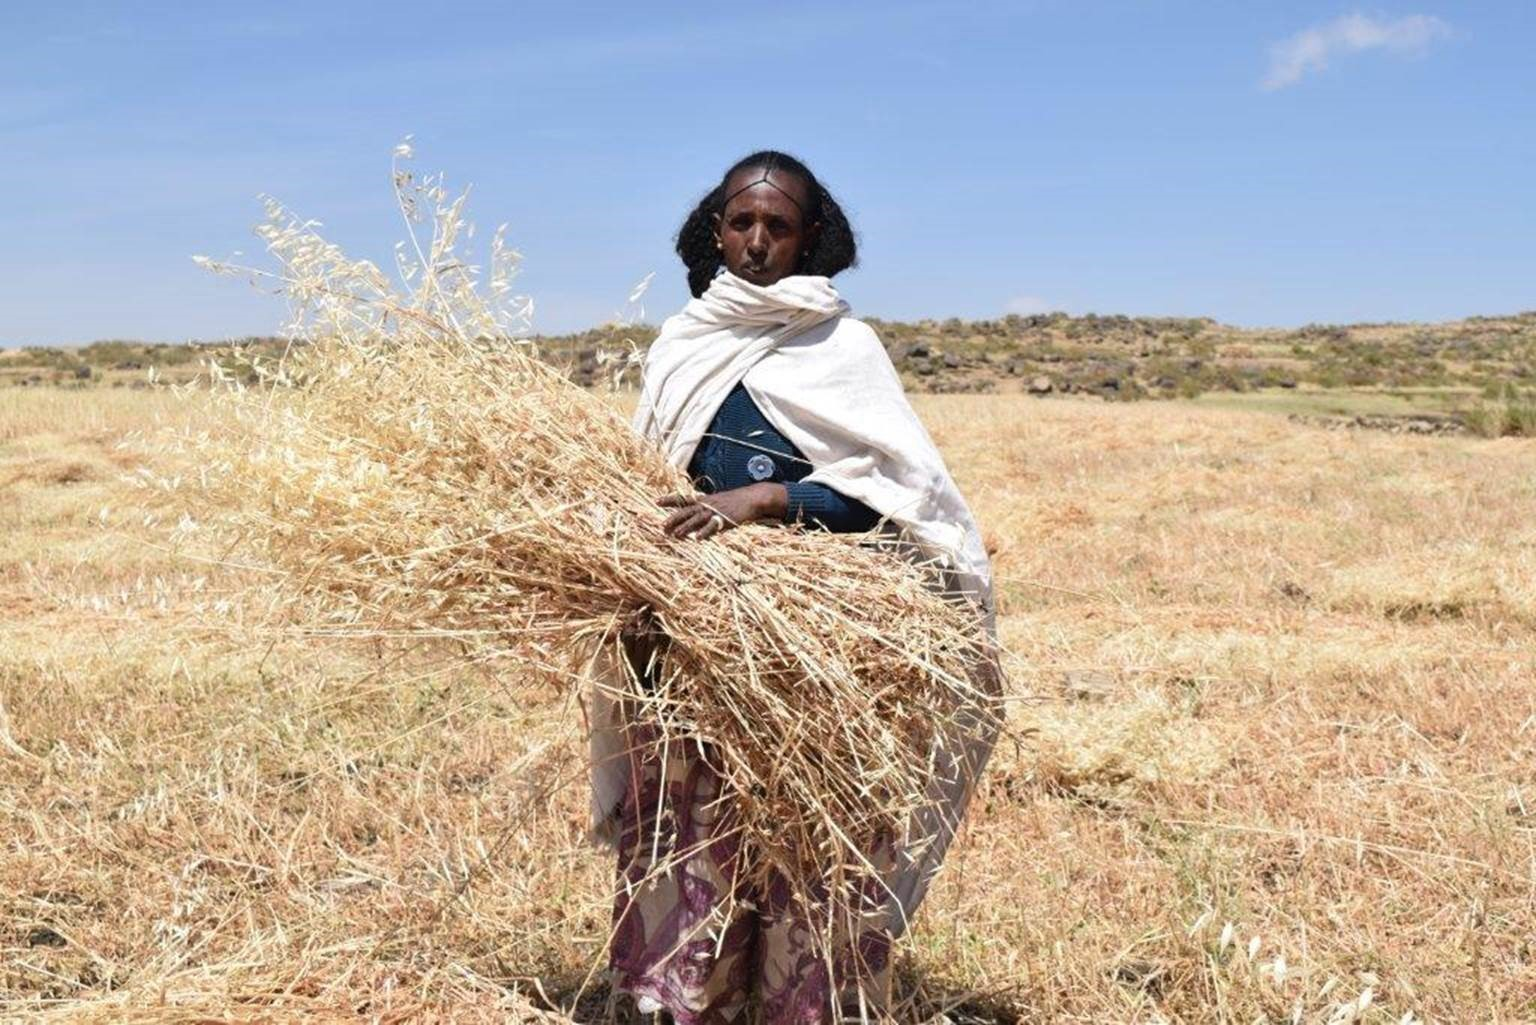 Herit in Ethiopia with her harvest